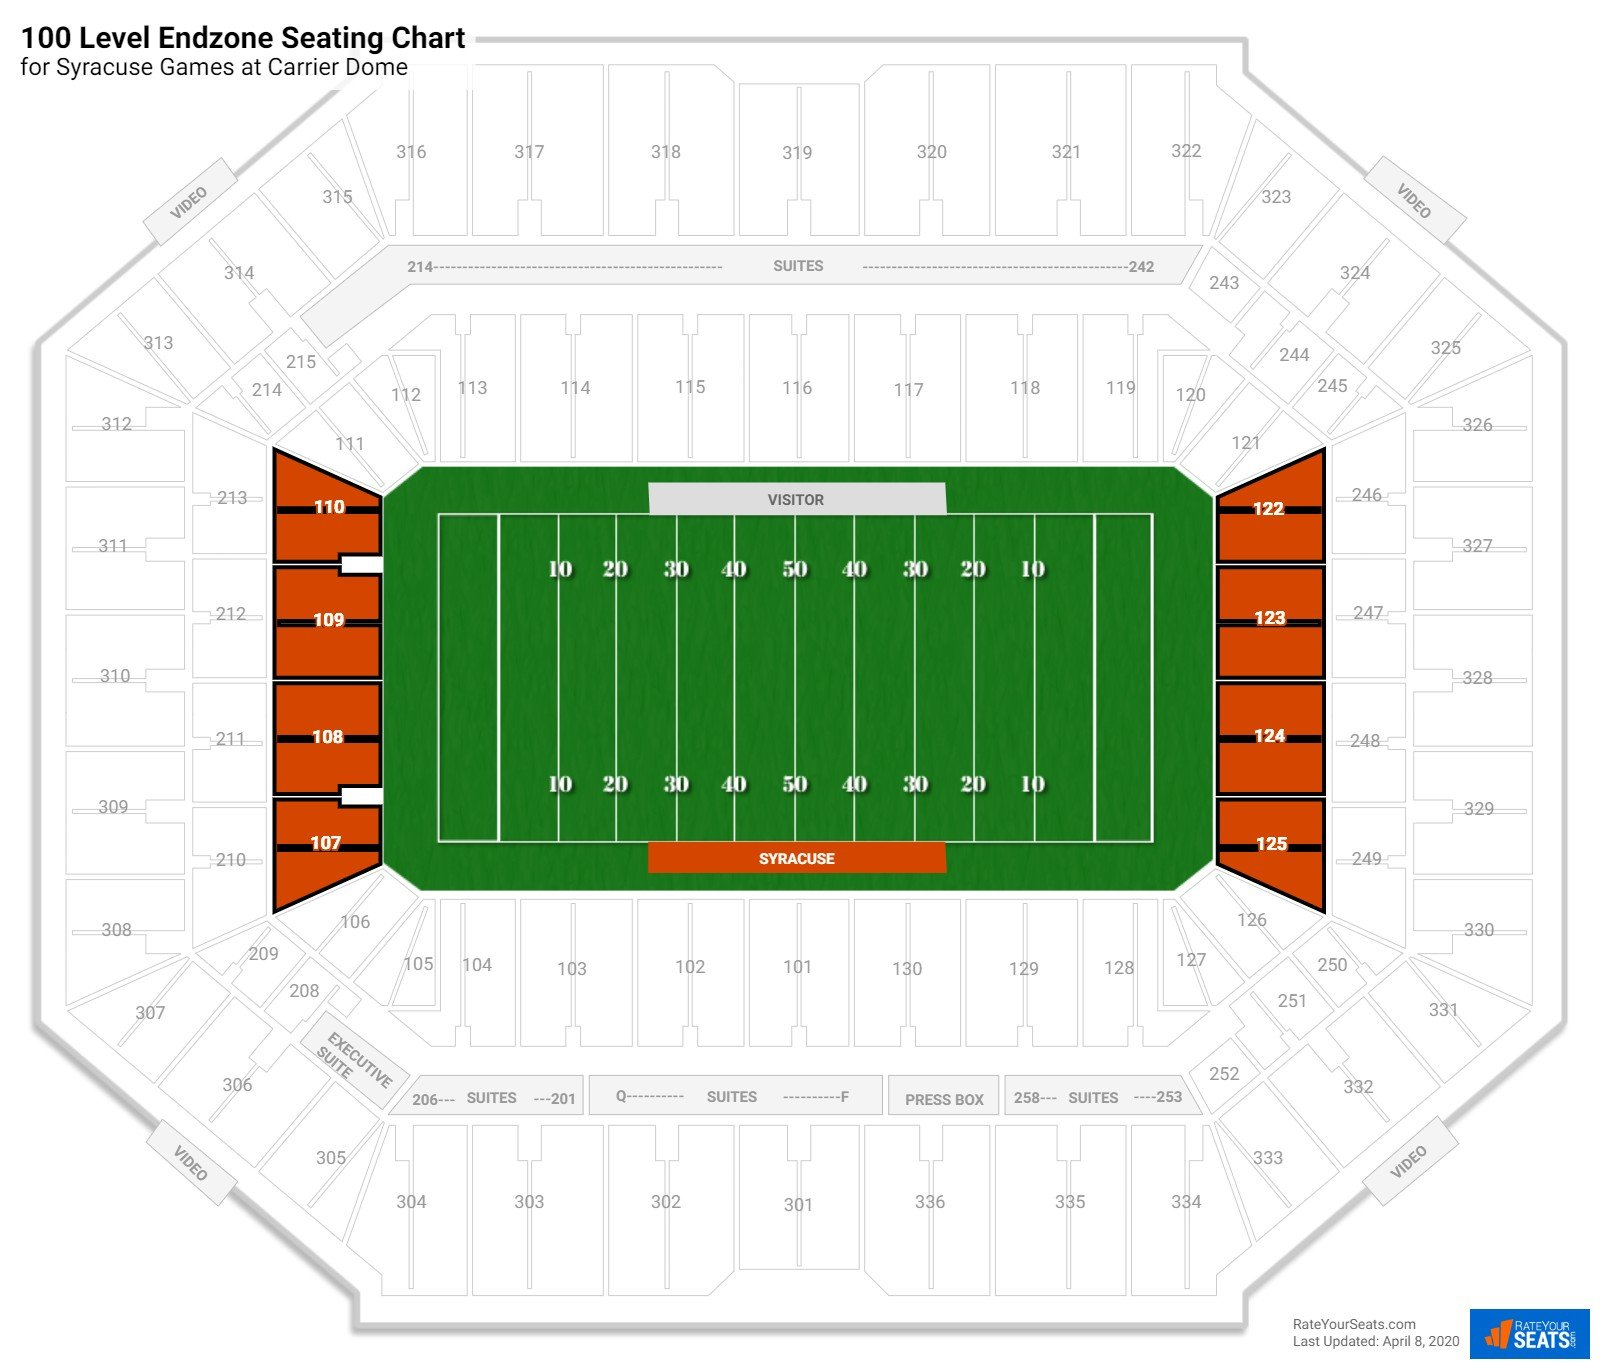 Carrier Dome 100 Level Endzone seating chart